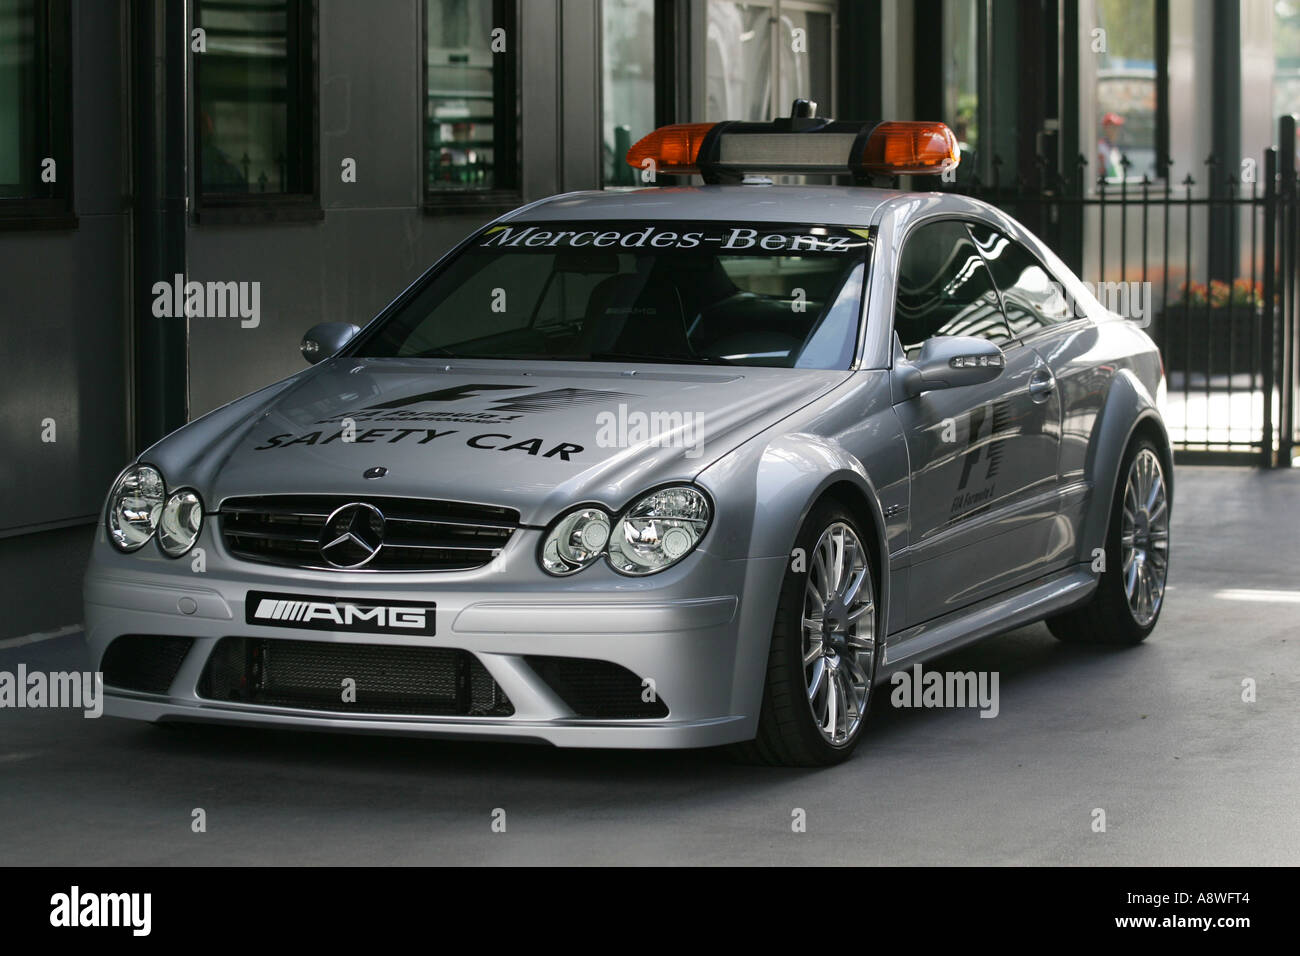 f1mercedes amg safety car australian formula one grand prix 01 02 04 stock photo royalty free. Black Bedroom Furniture Sets. Home Design Ideas